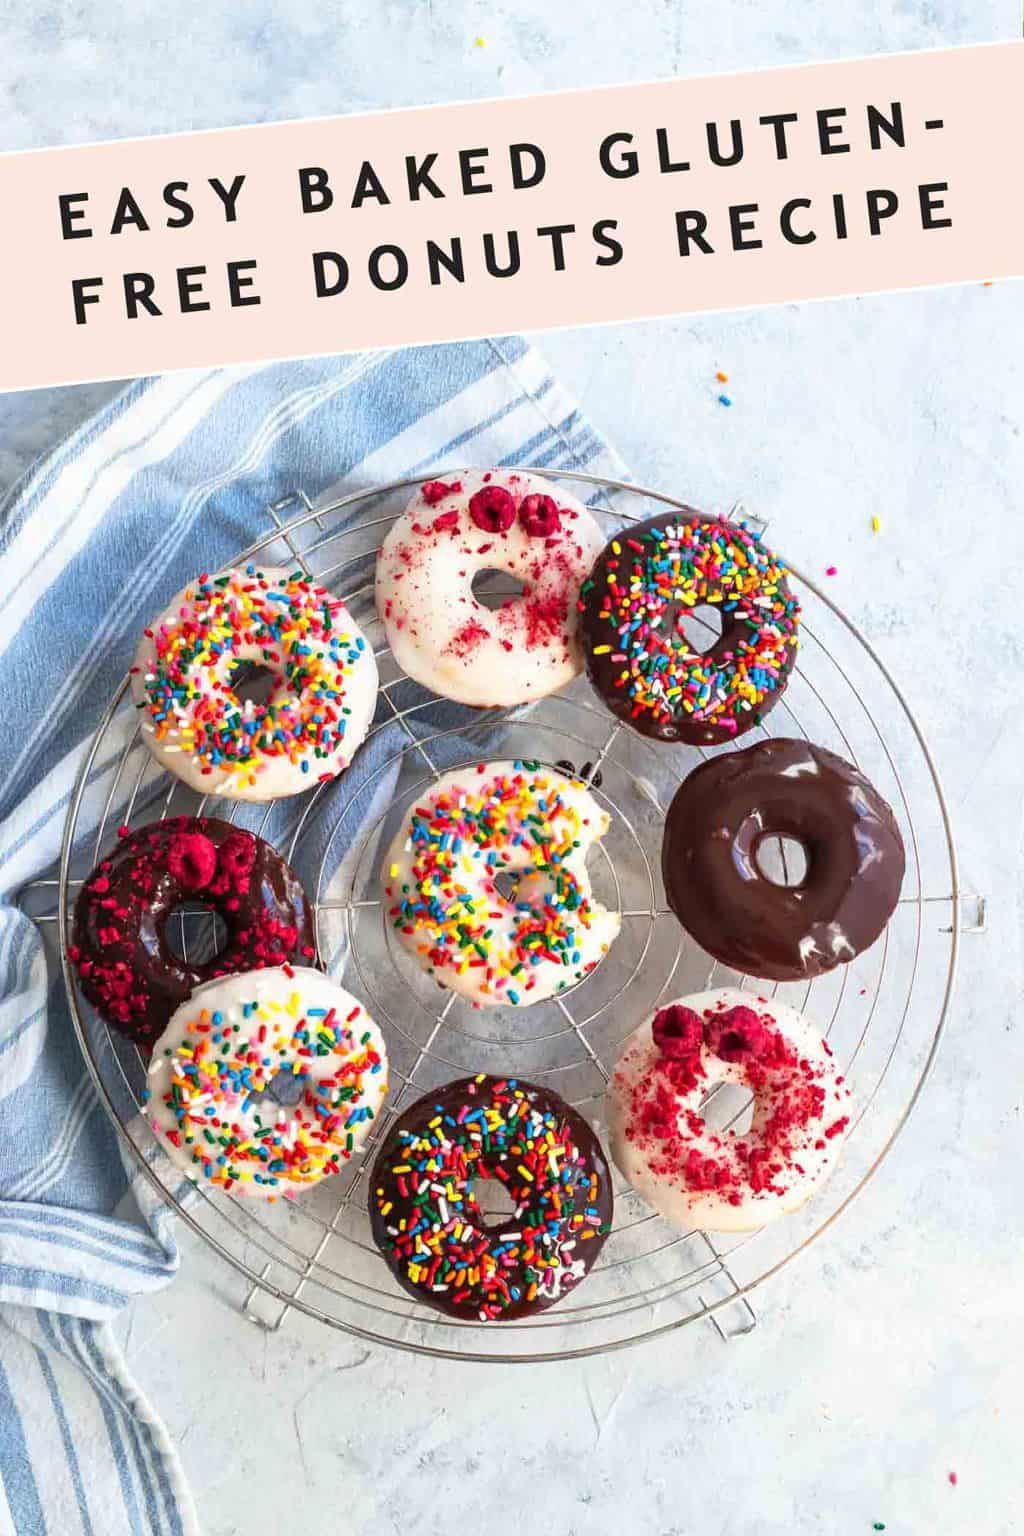 photo for of the recipe card to make the gluten free donuts recipe by top Houston lifestyle blogger Ashley Rose of Sugar & Cloth